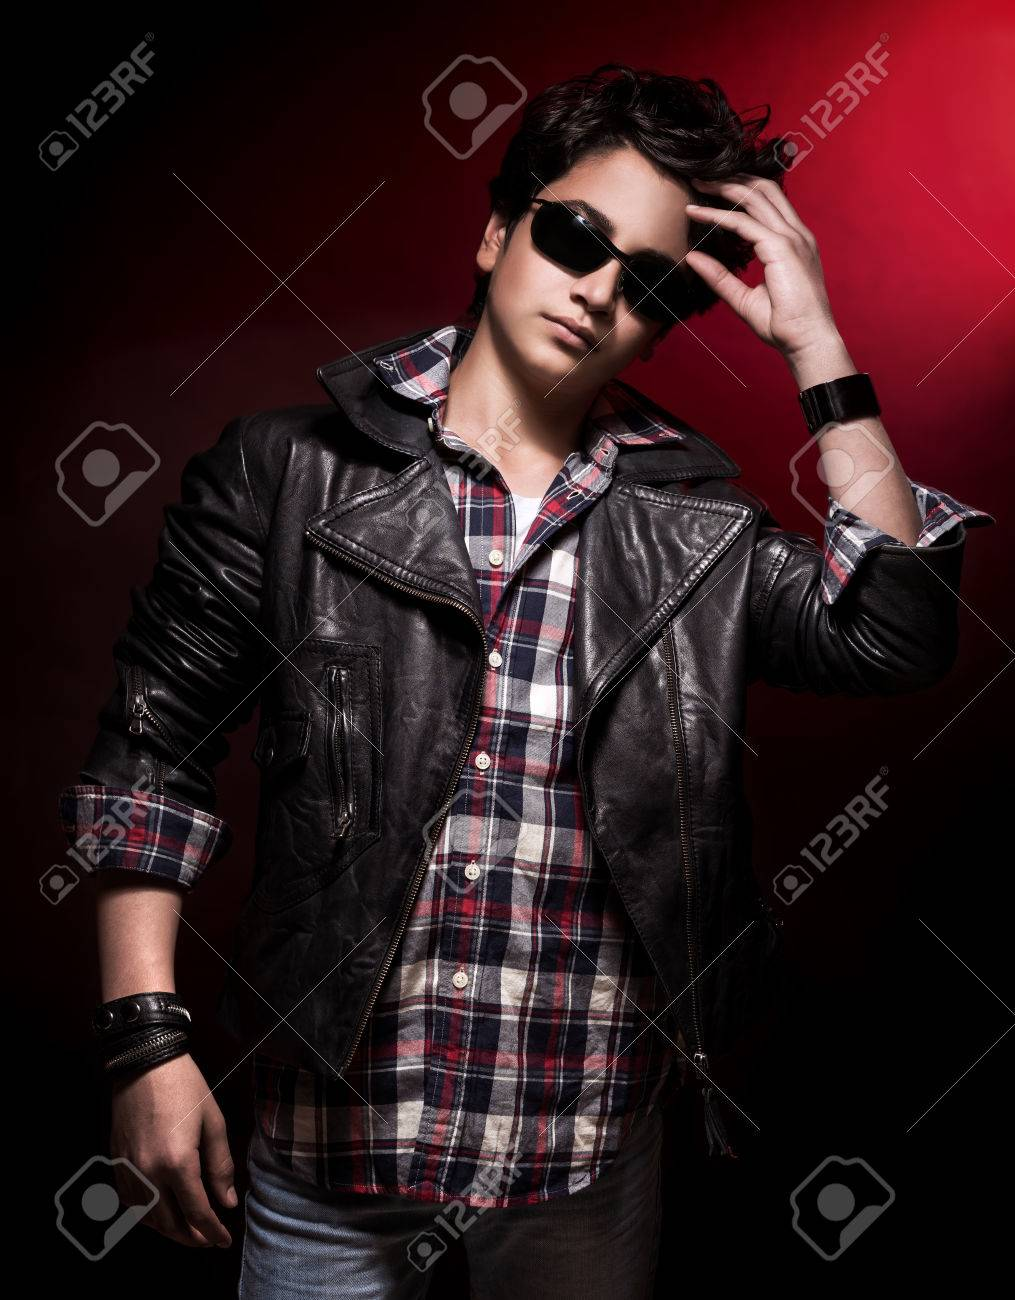 Handsome Teen Boy Wearing Stylish Sunglasses And Leather Jacket